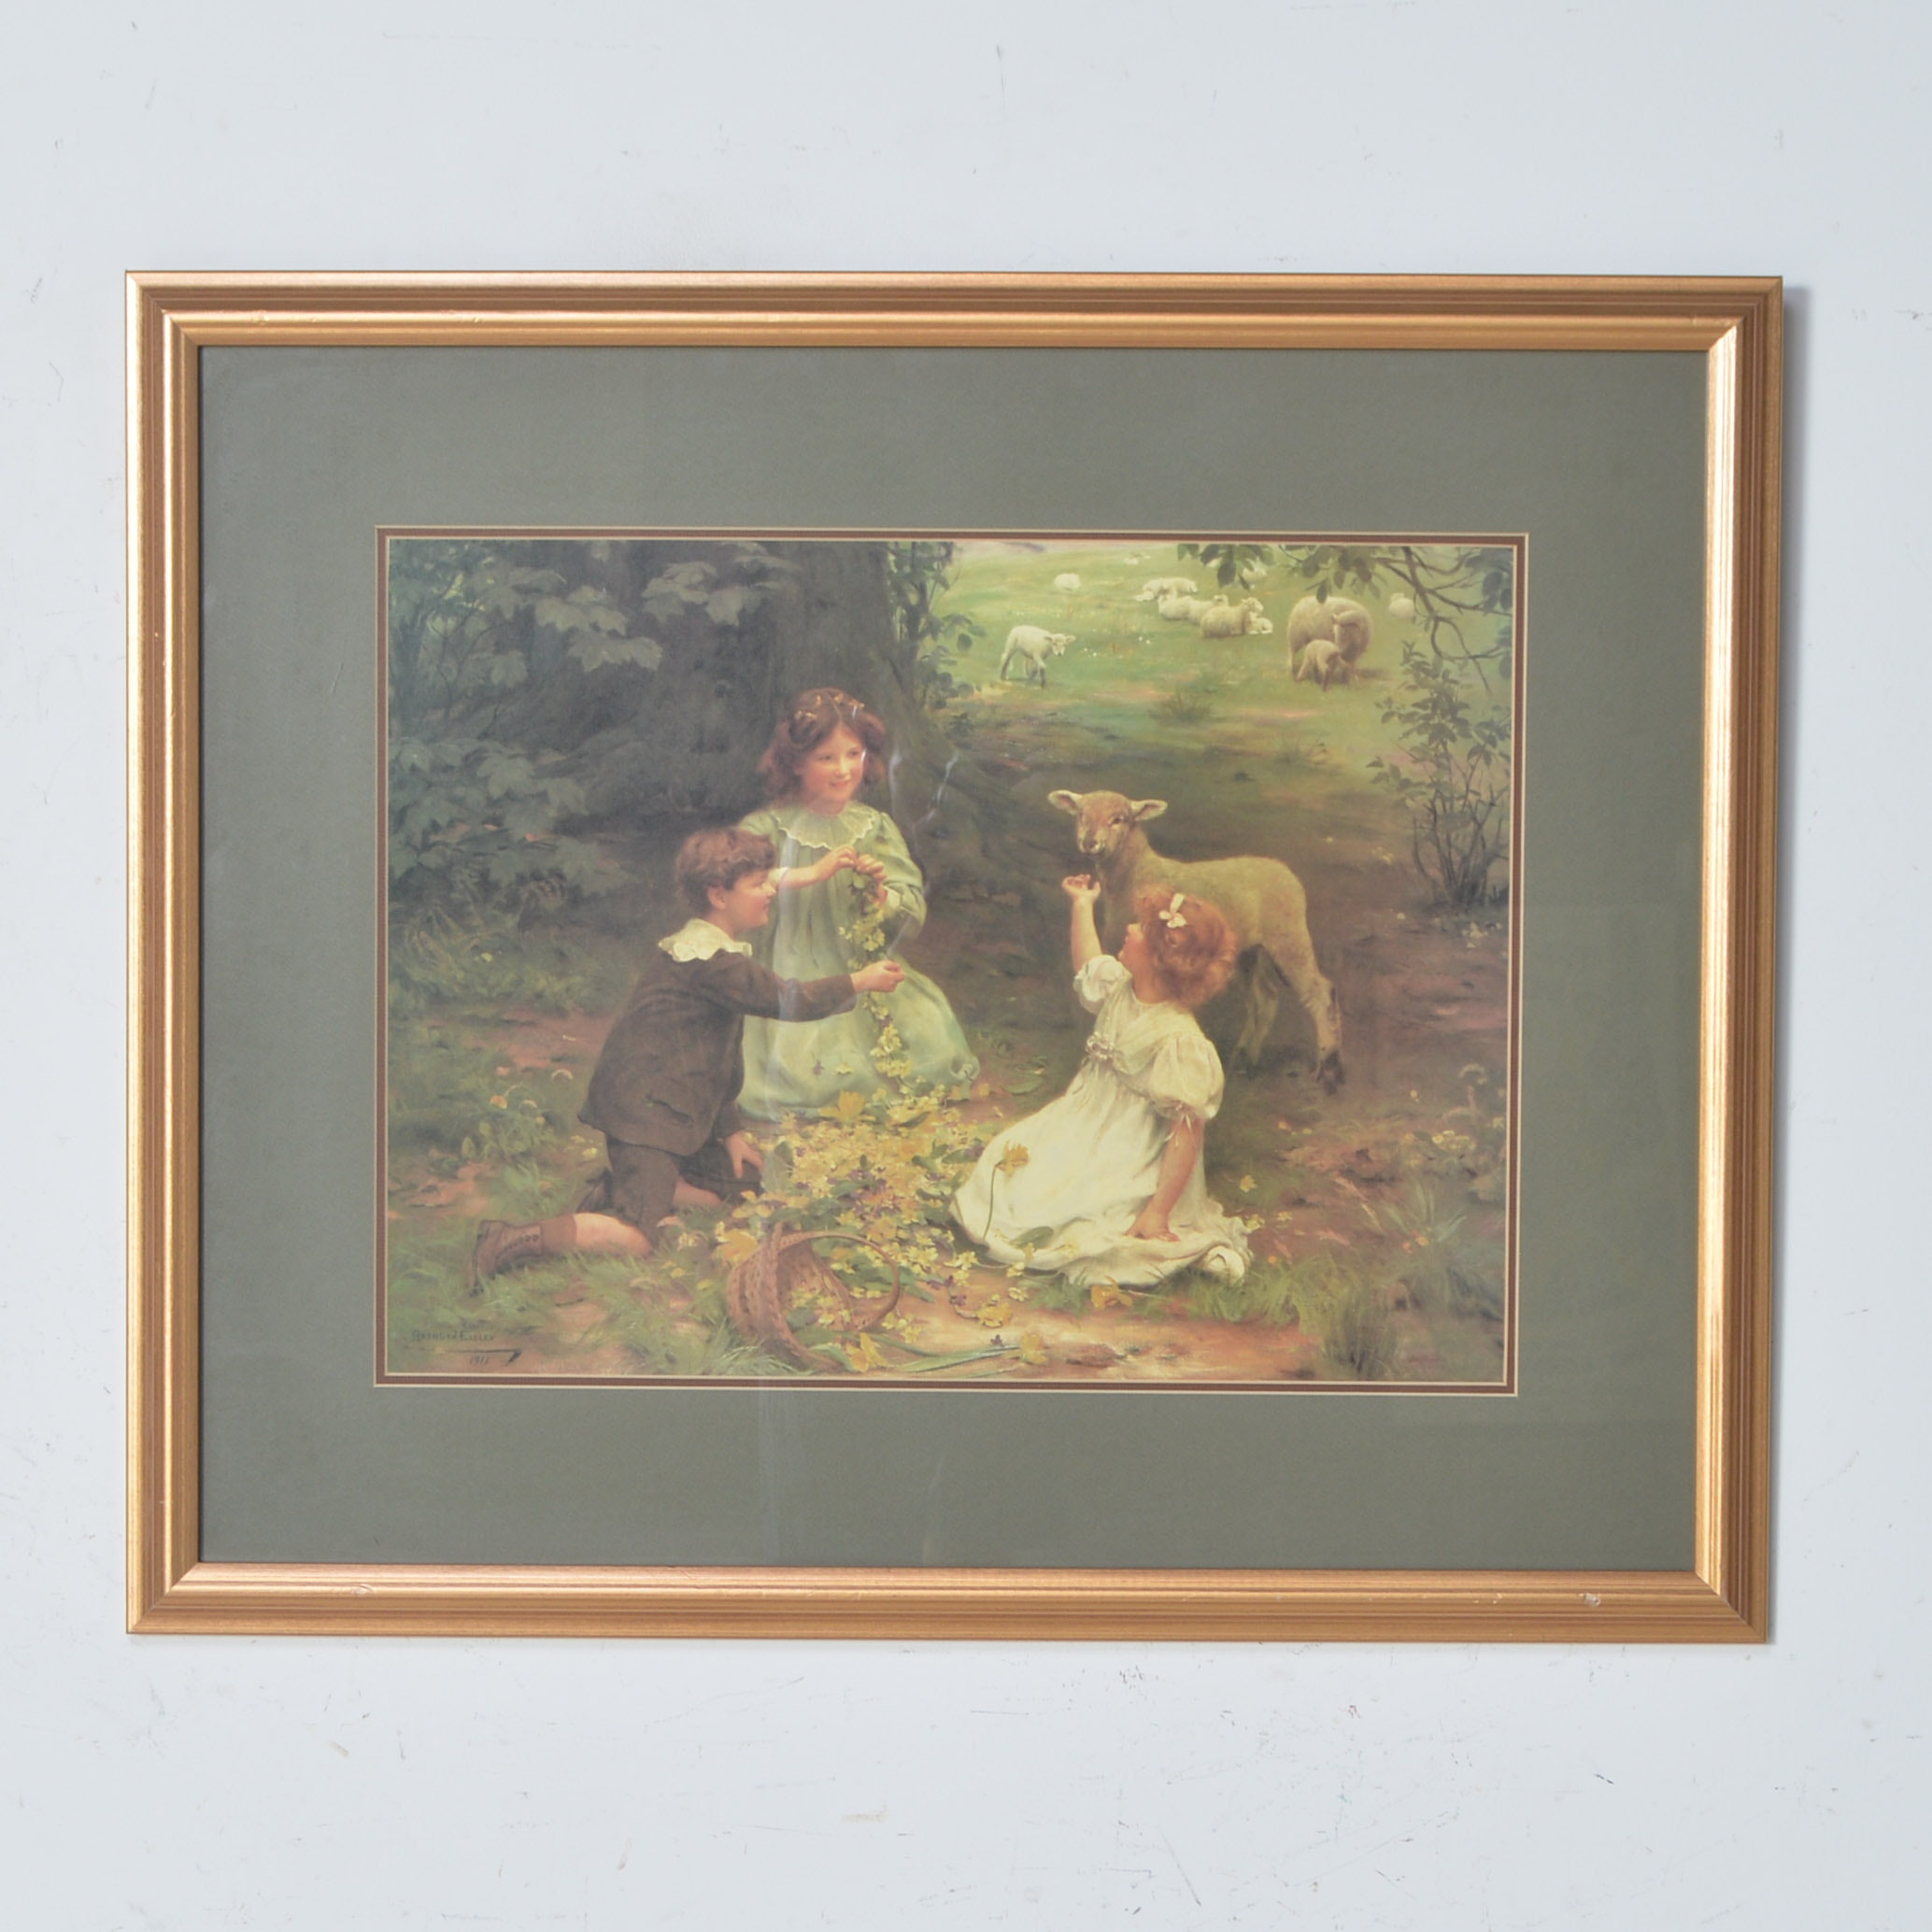 Arthur Elsley Offset Lithograph of Children and a Lamb